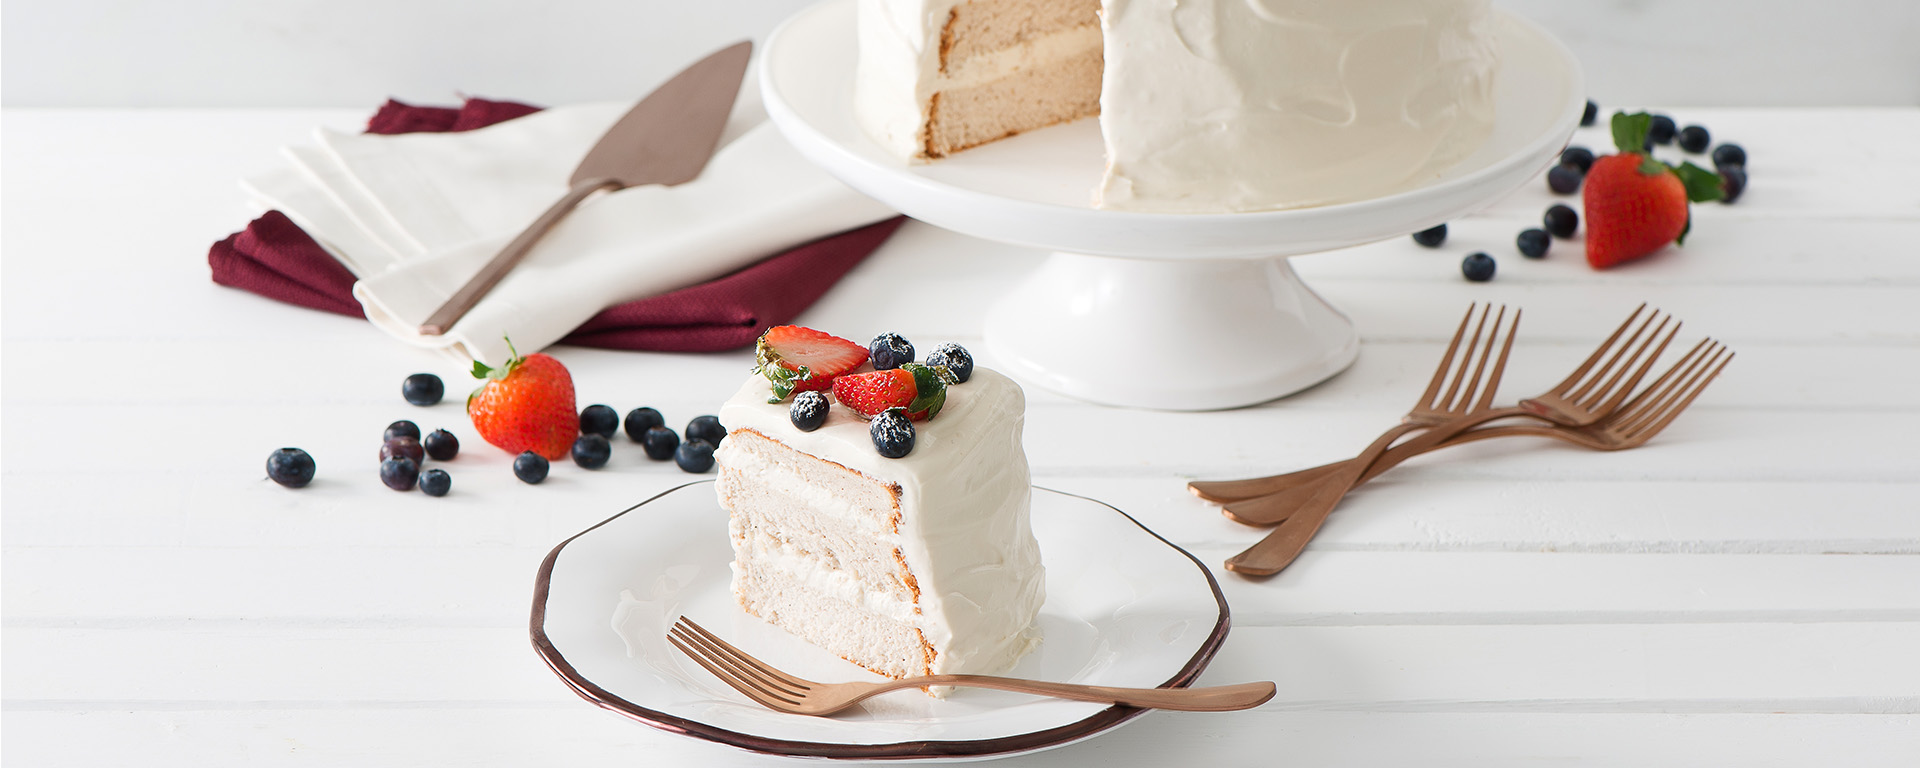 Photo for - Spiced Angel Food Cake with Sour Cream Frosting